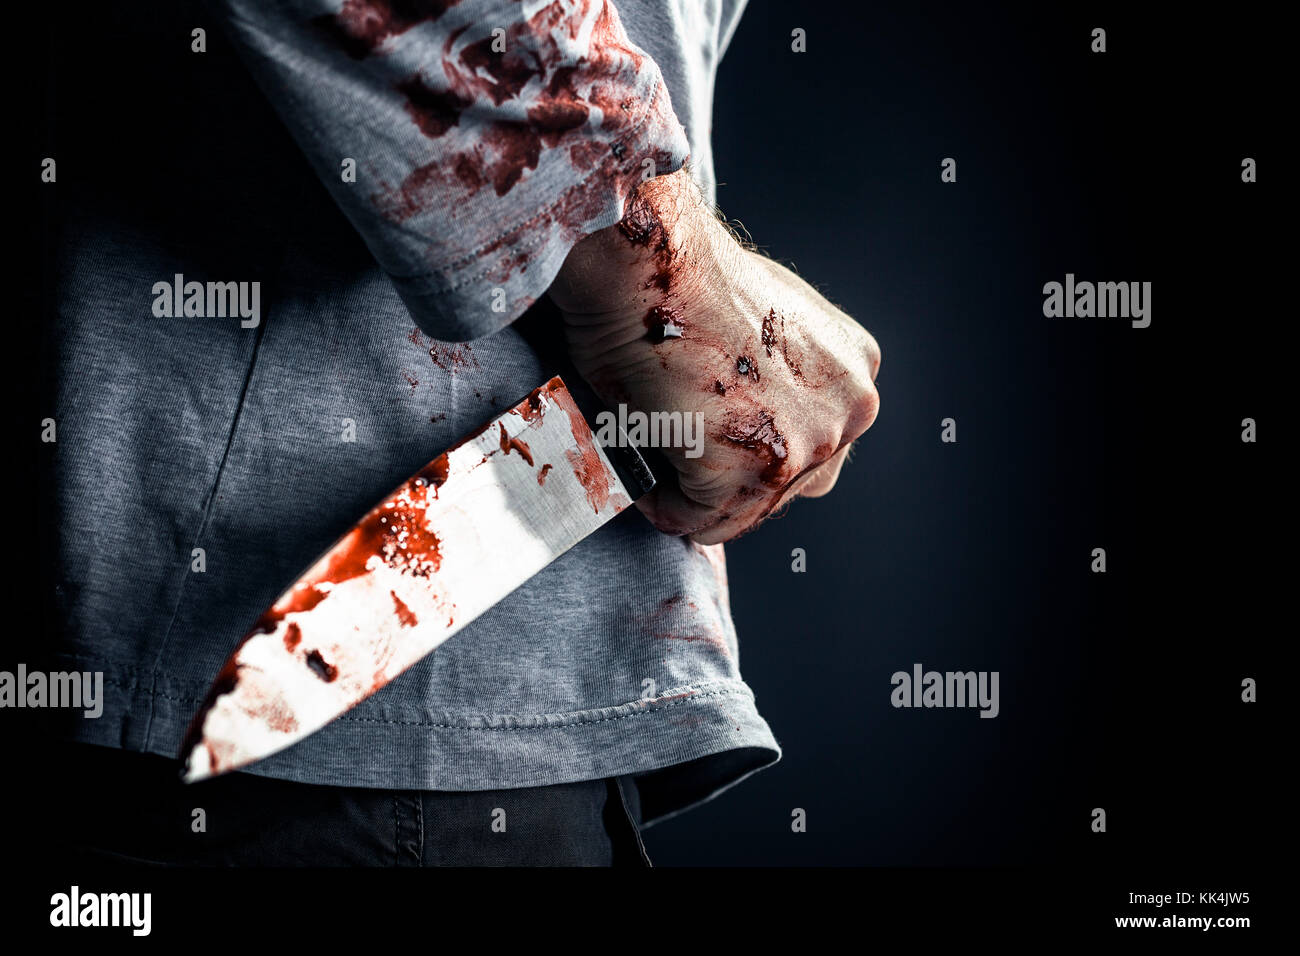 detail of man holding bloody knife crime concept - Stock Image